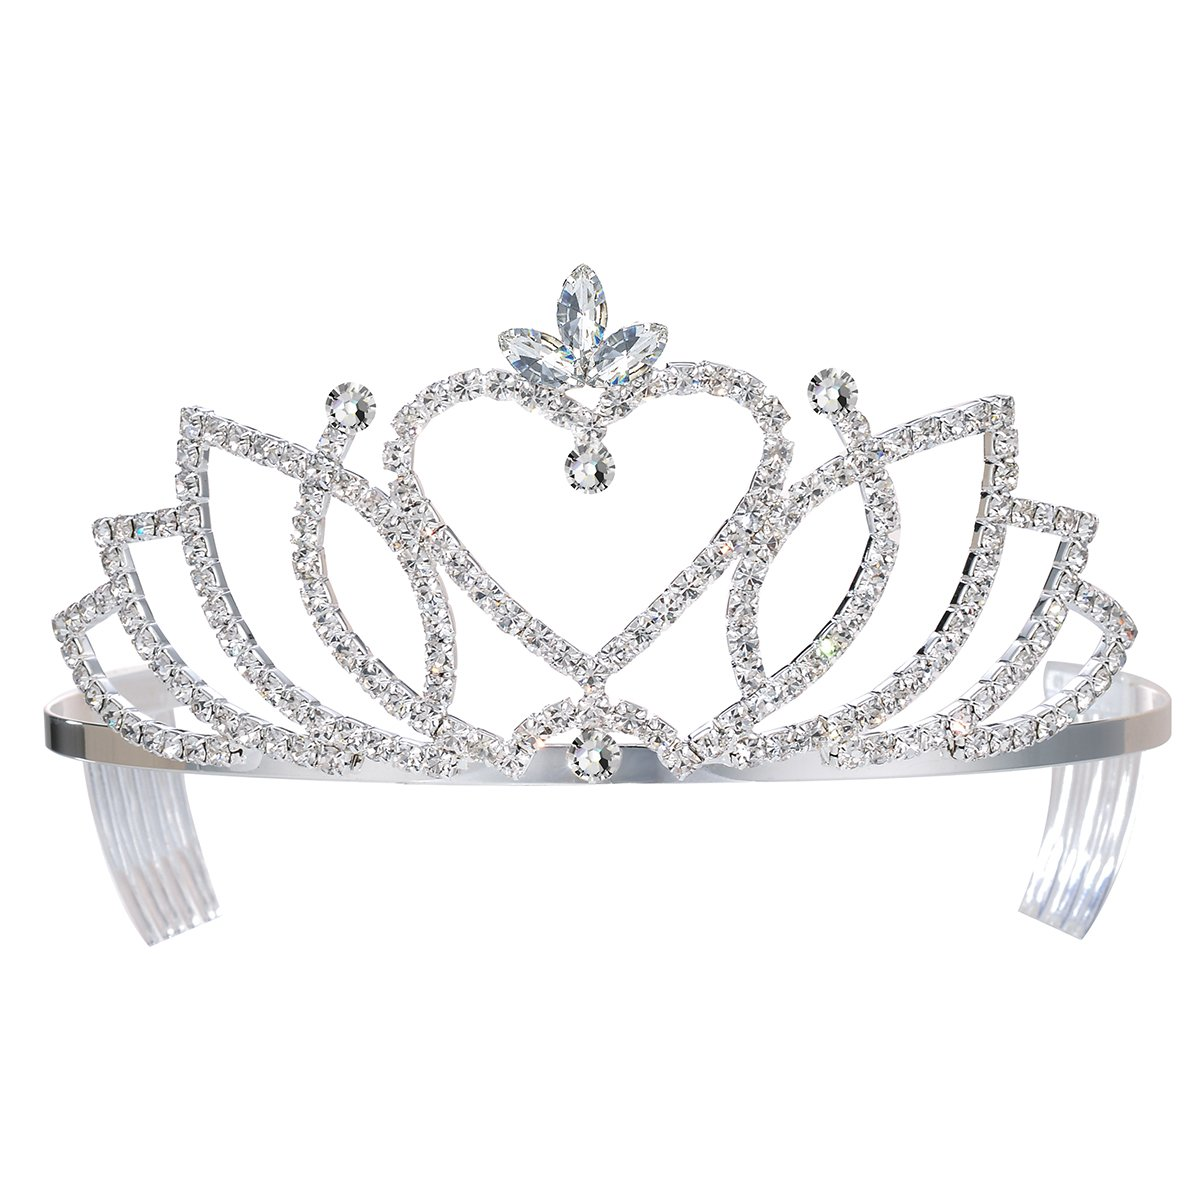 26520221e12a Get Quotations · DcZeRong Pageant Tiara Bridal Crowns Prom Tiara Wedding  Tiaras Princess Tiaras Prom Queen Crowns